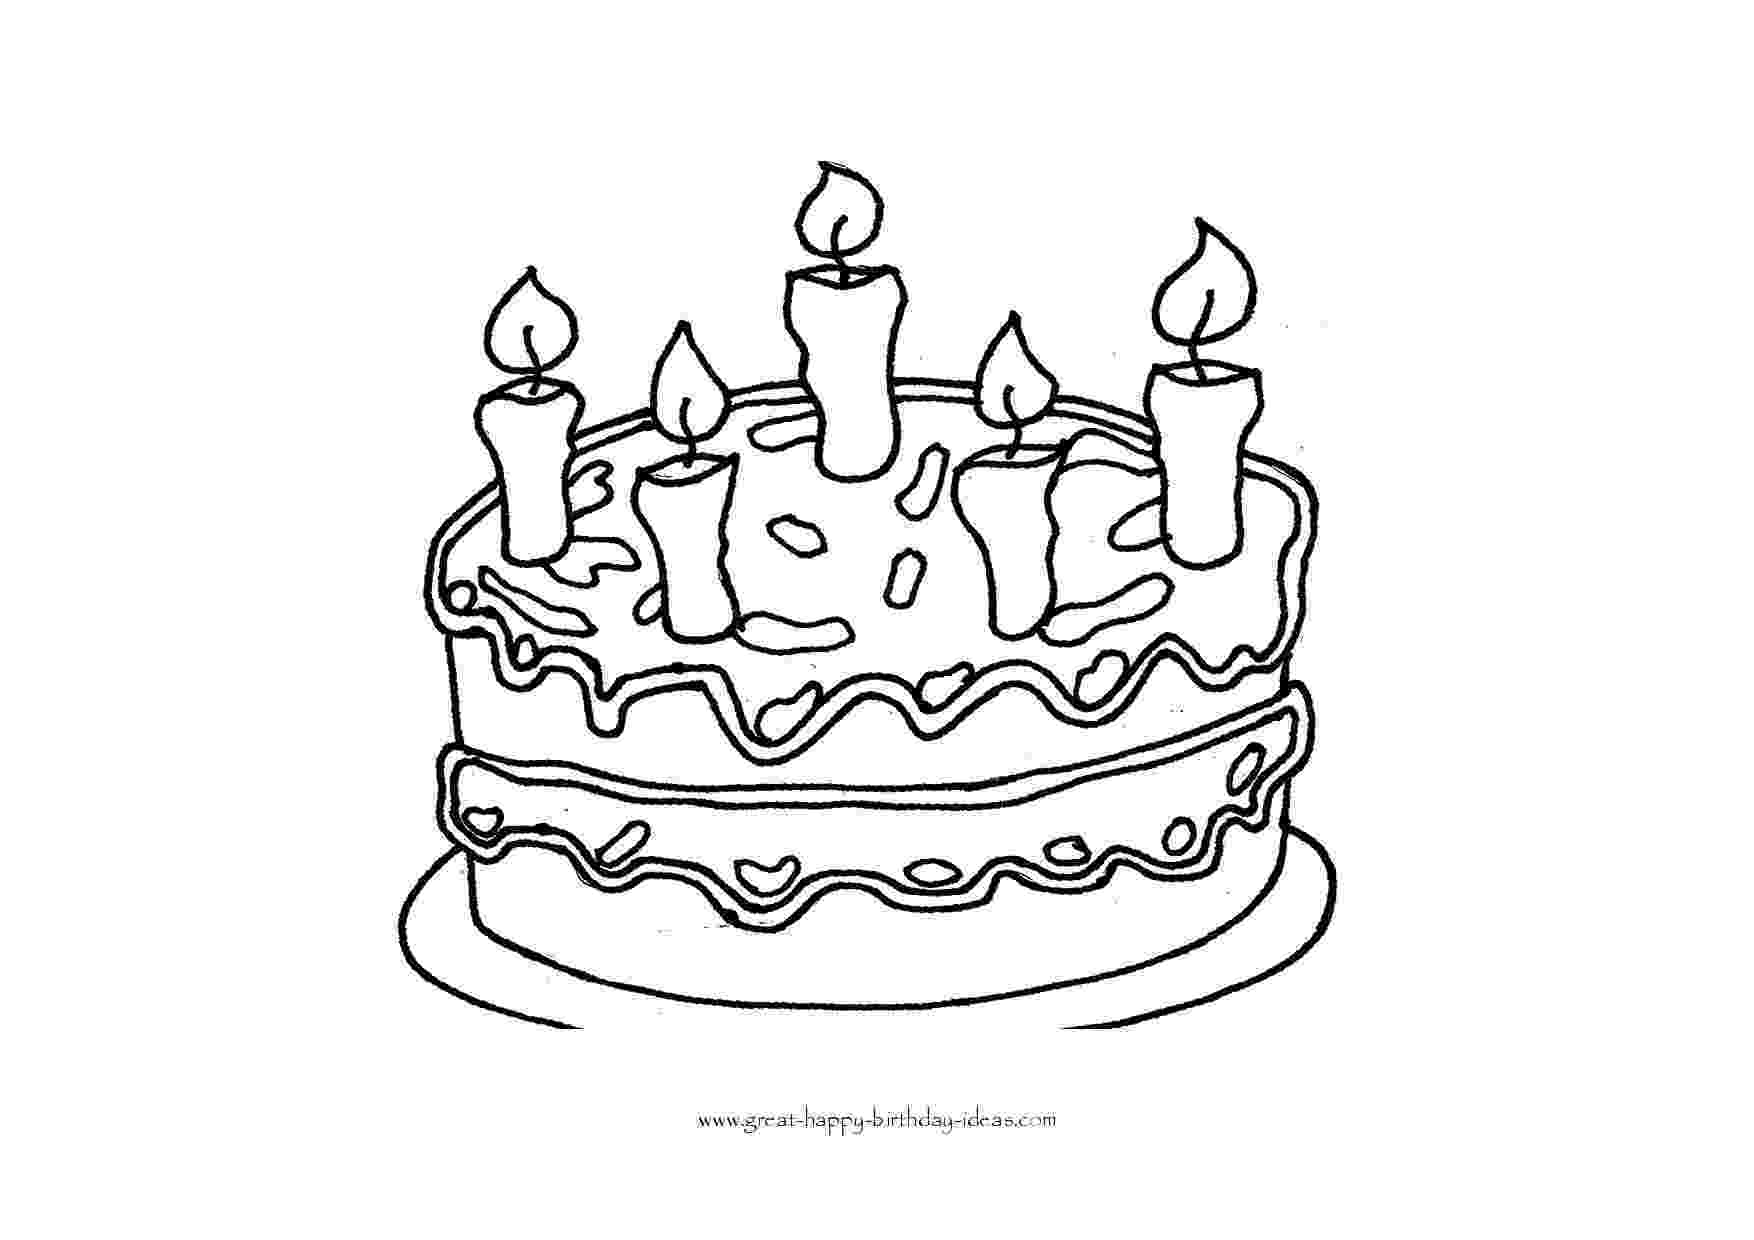 coloring page of a birthday cake free printable birthday cake coloring pages for kids cake coloring a birthday of page